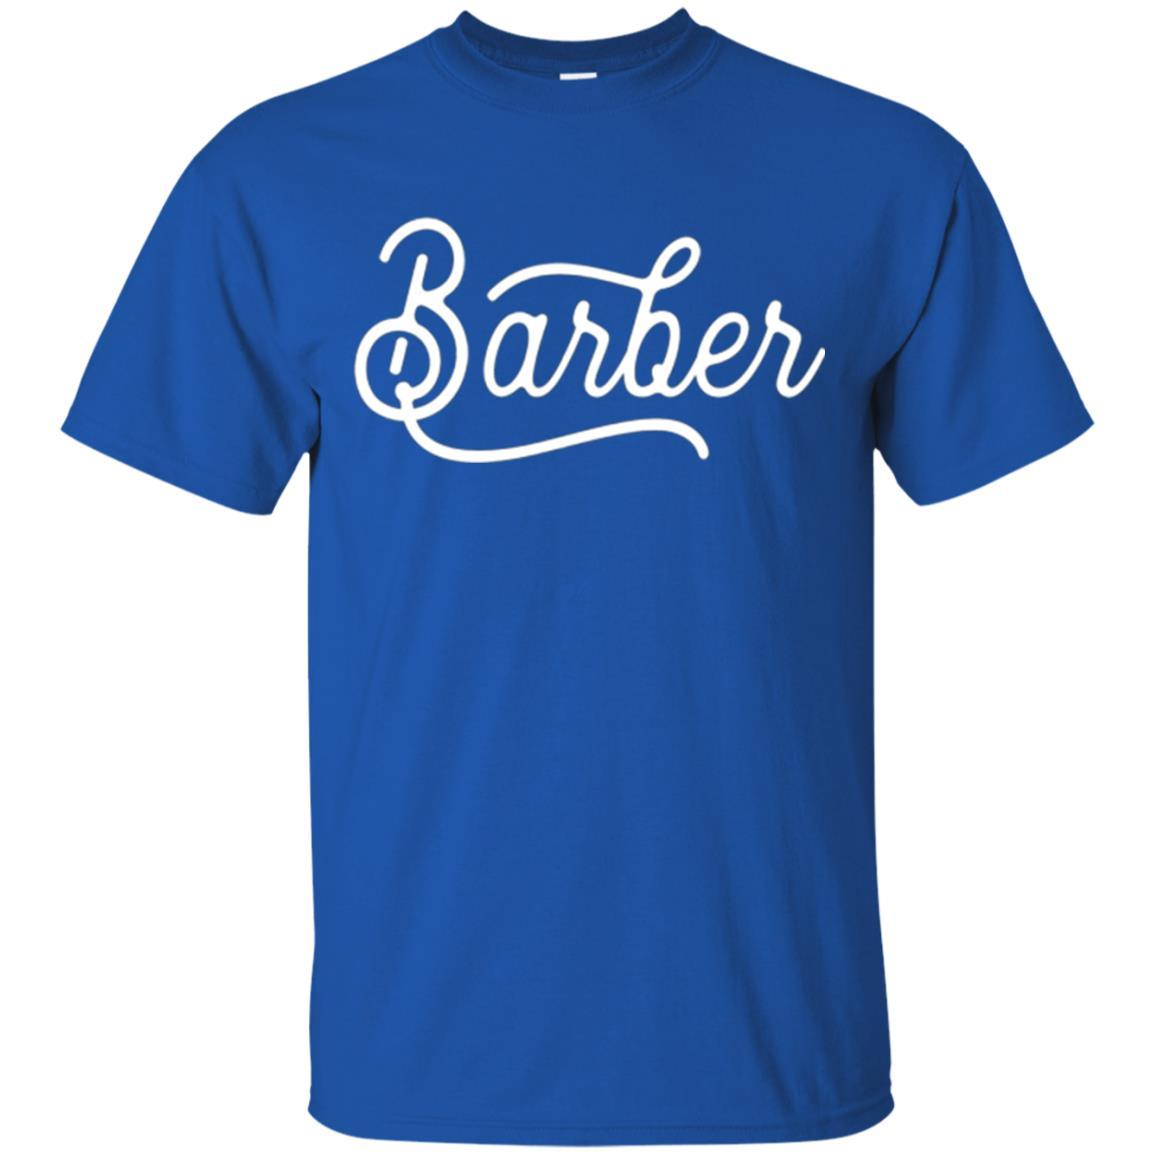 Barber Gift Idea For Barbers T Shirt For Graduation Zgalaxy Fashion T